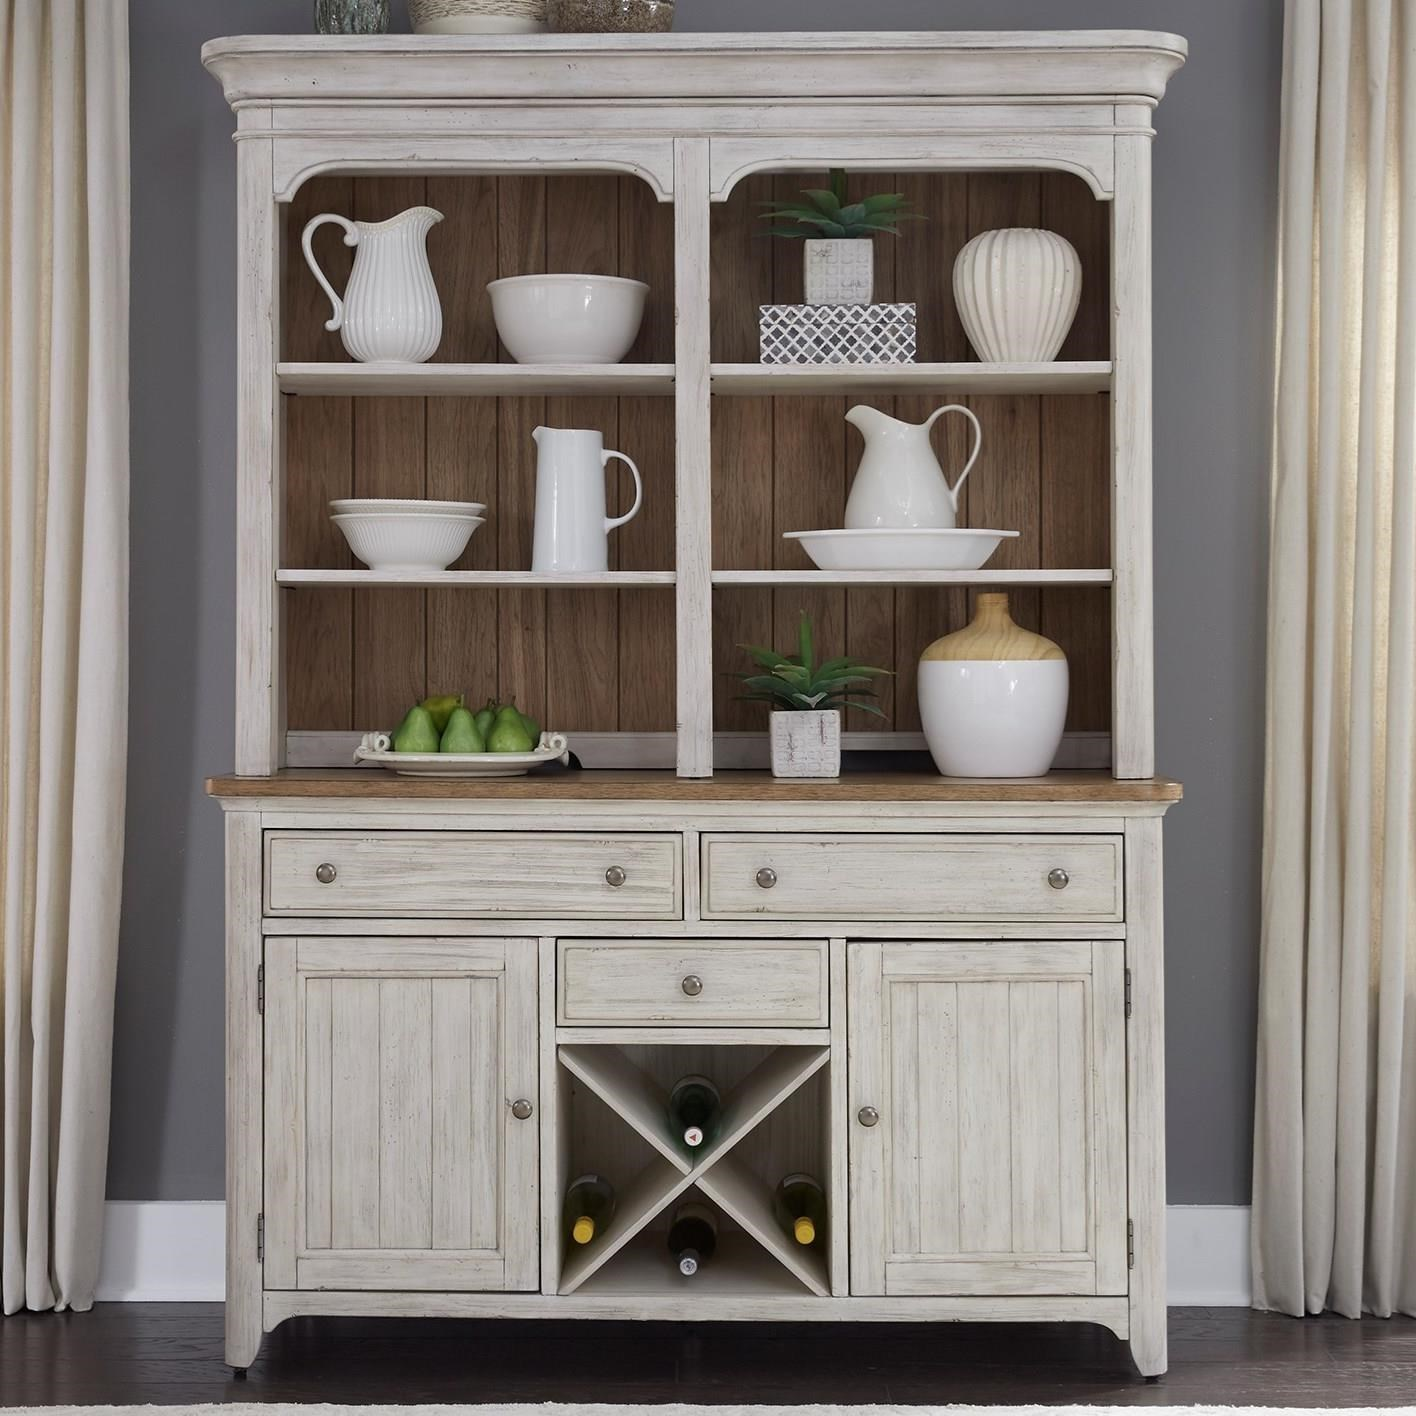 Beau Liberty Furniture Farmhouse Reimagined Relaxed Vintage Hutch And Buffet  With Fully Stained Interior Drawers